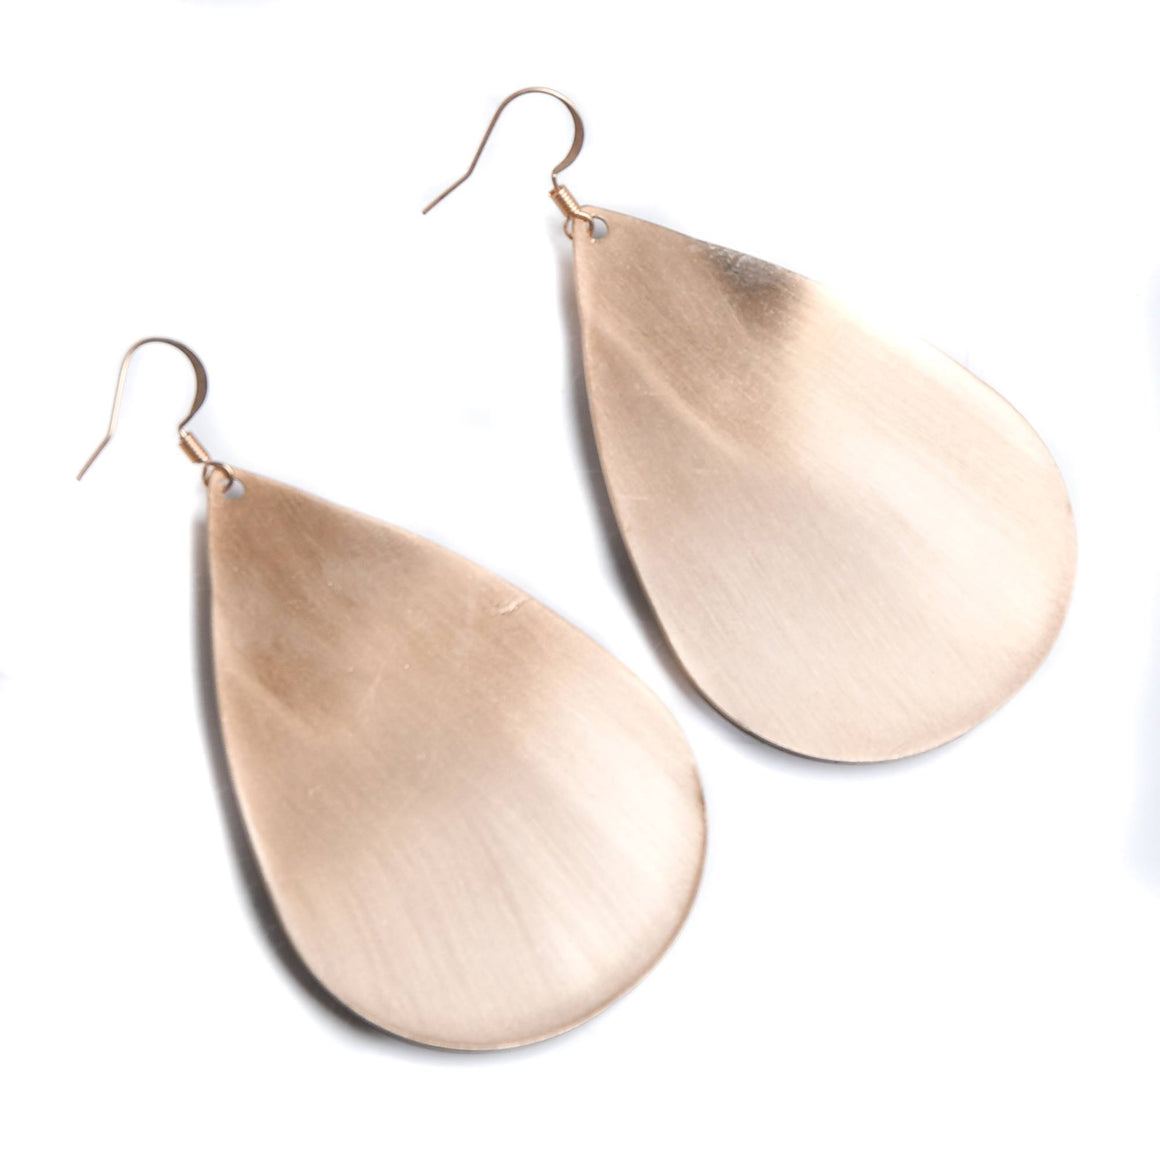 Brushed Teardrop Earring - Gold - Warehouse Apparel